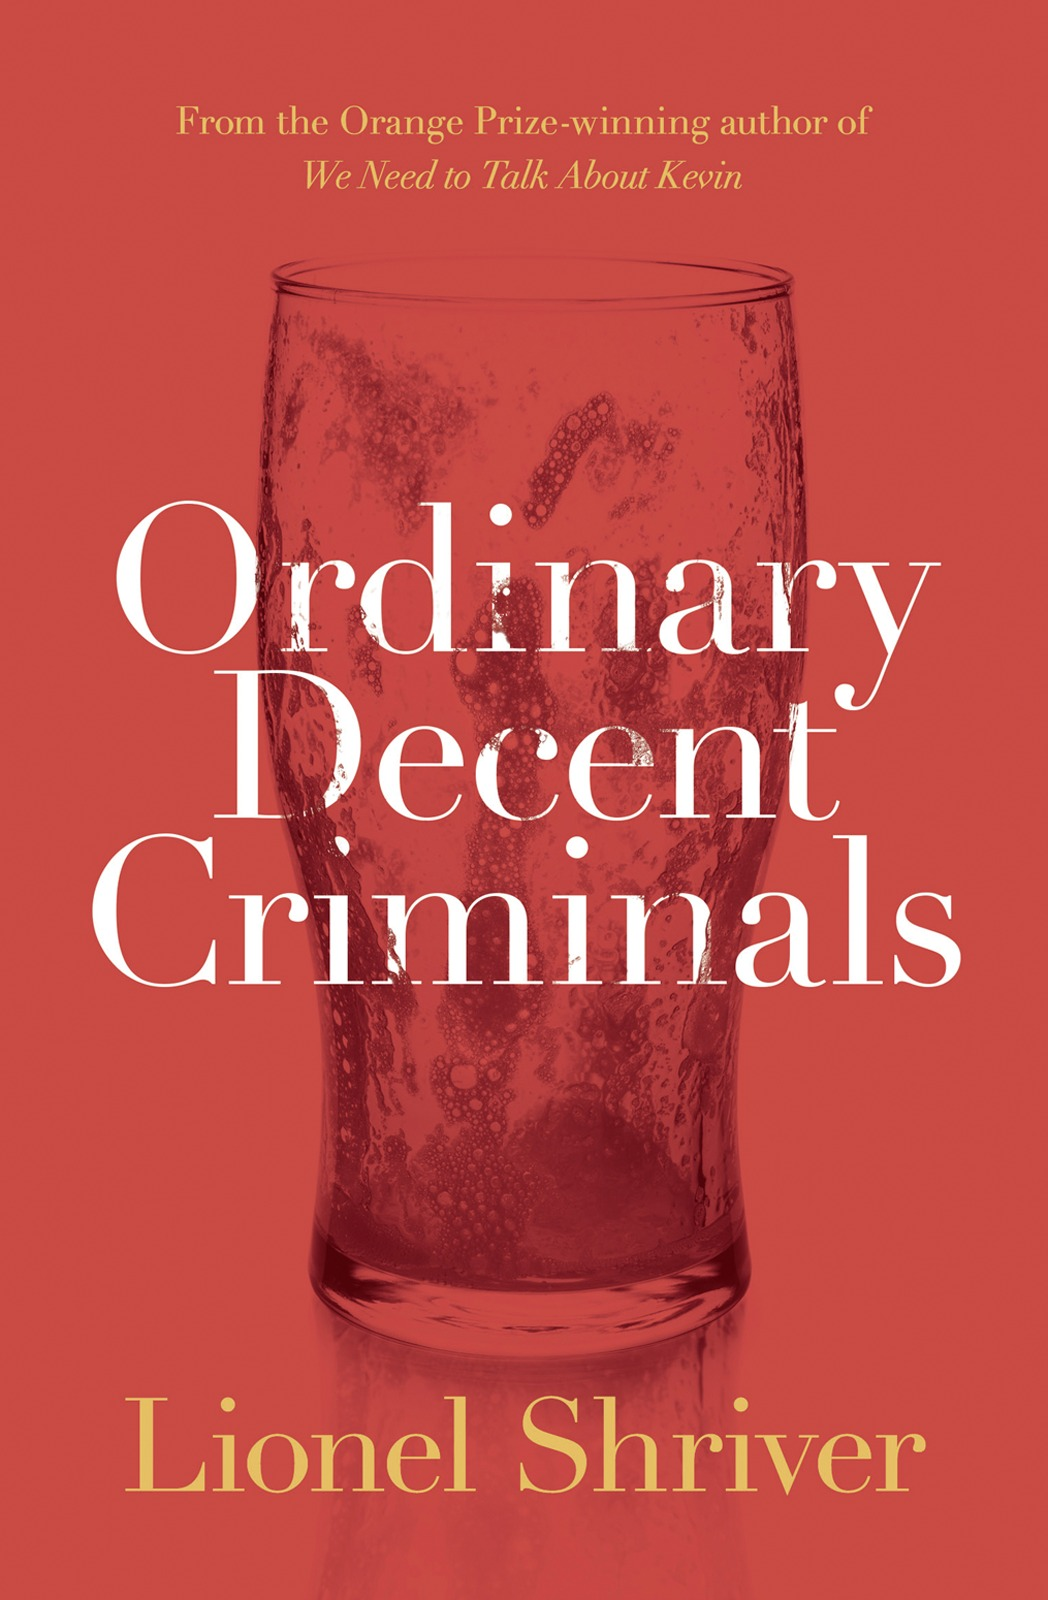 Lionel Shriver Ordinary Decent Criminals fun lovin criminals fun lovin criminals classic fantastic